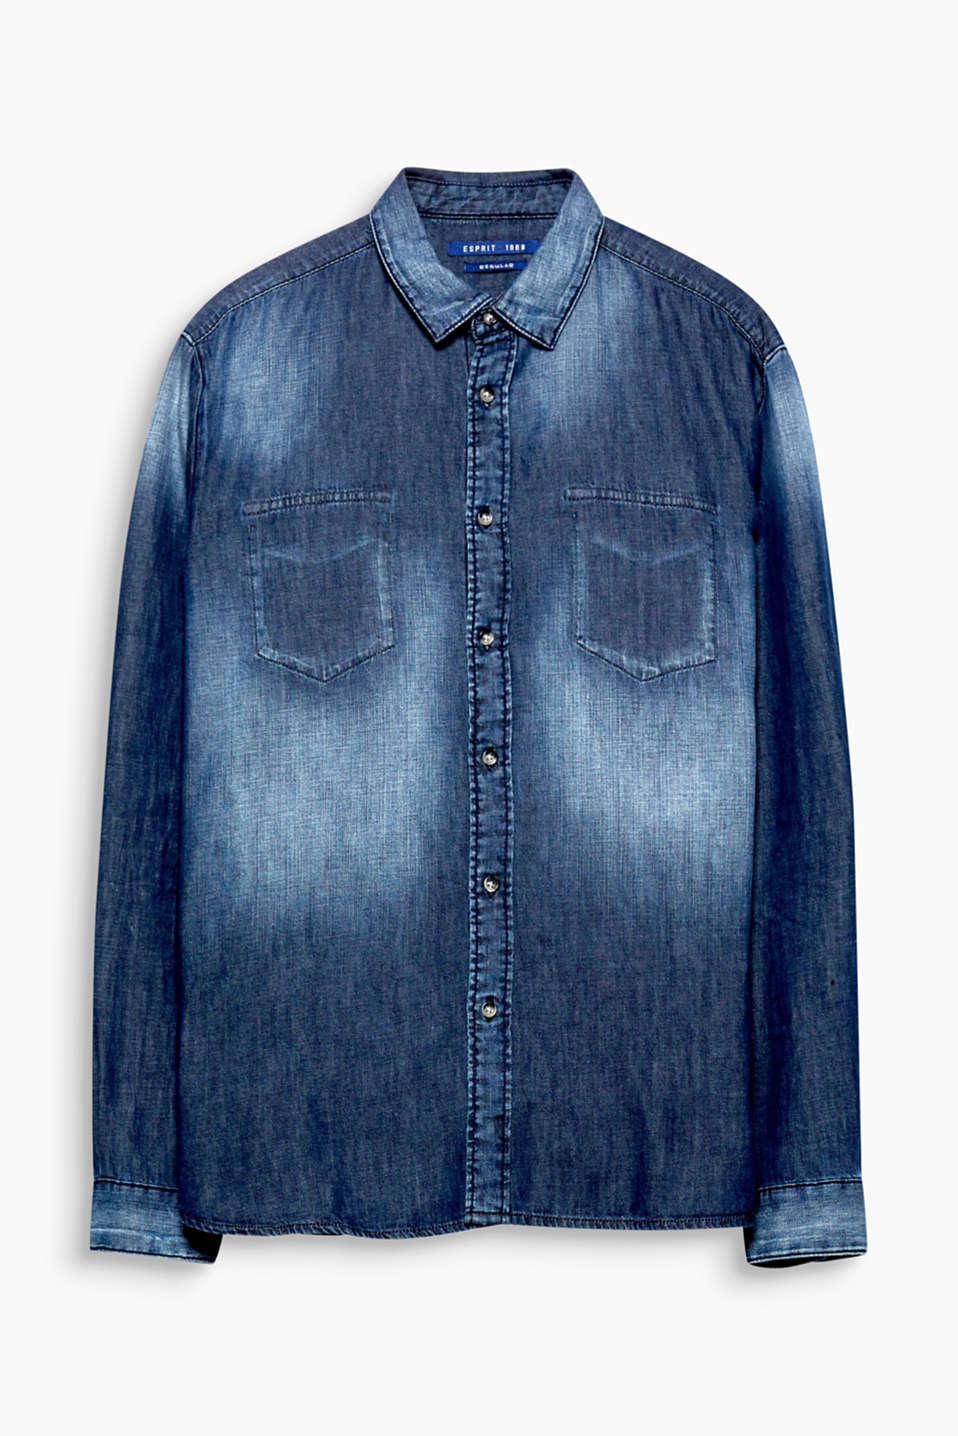 We love denim! And this shirt is a piece of denim heritage!